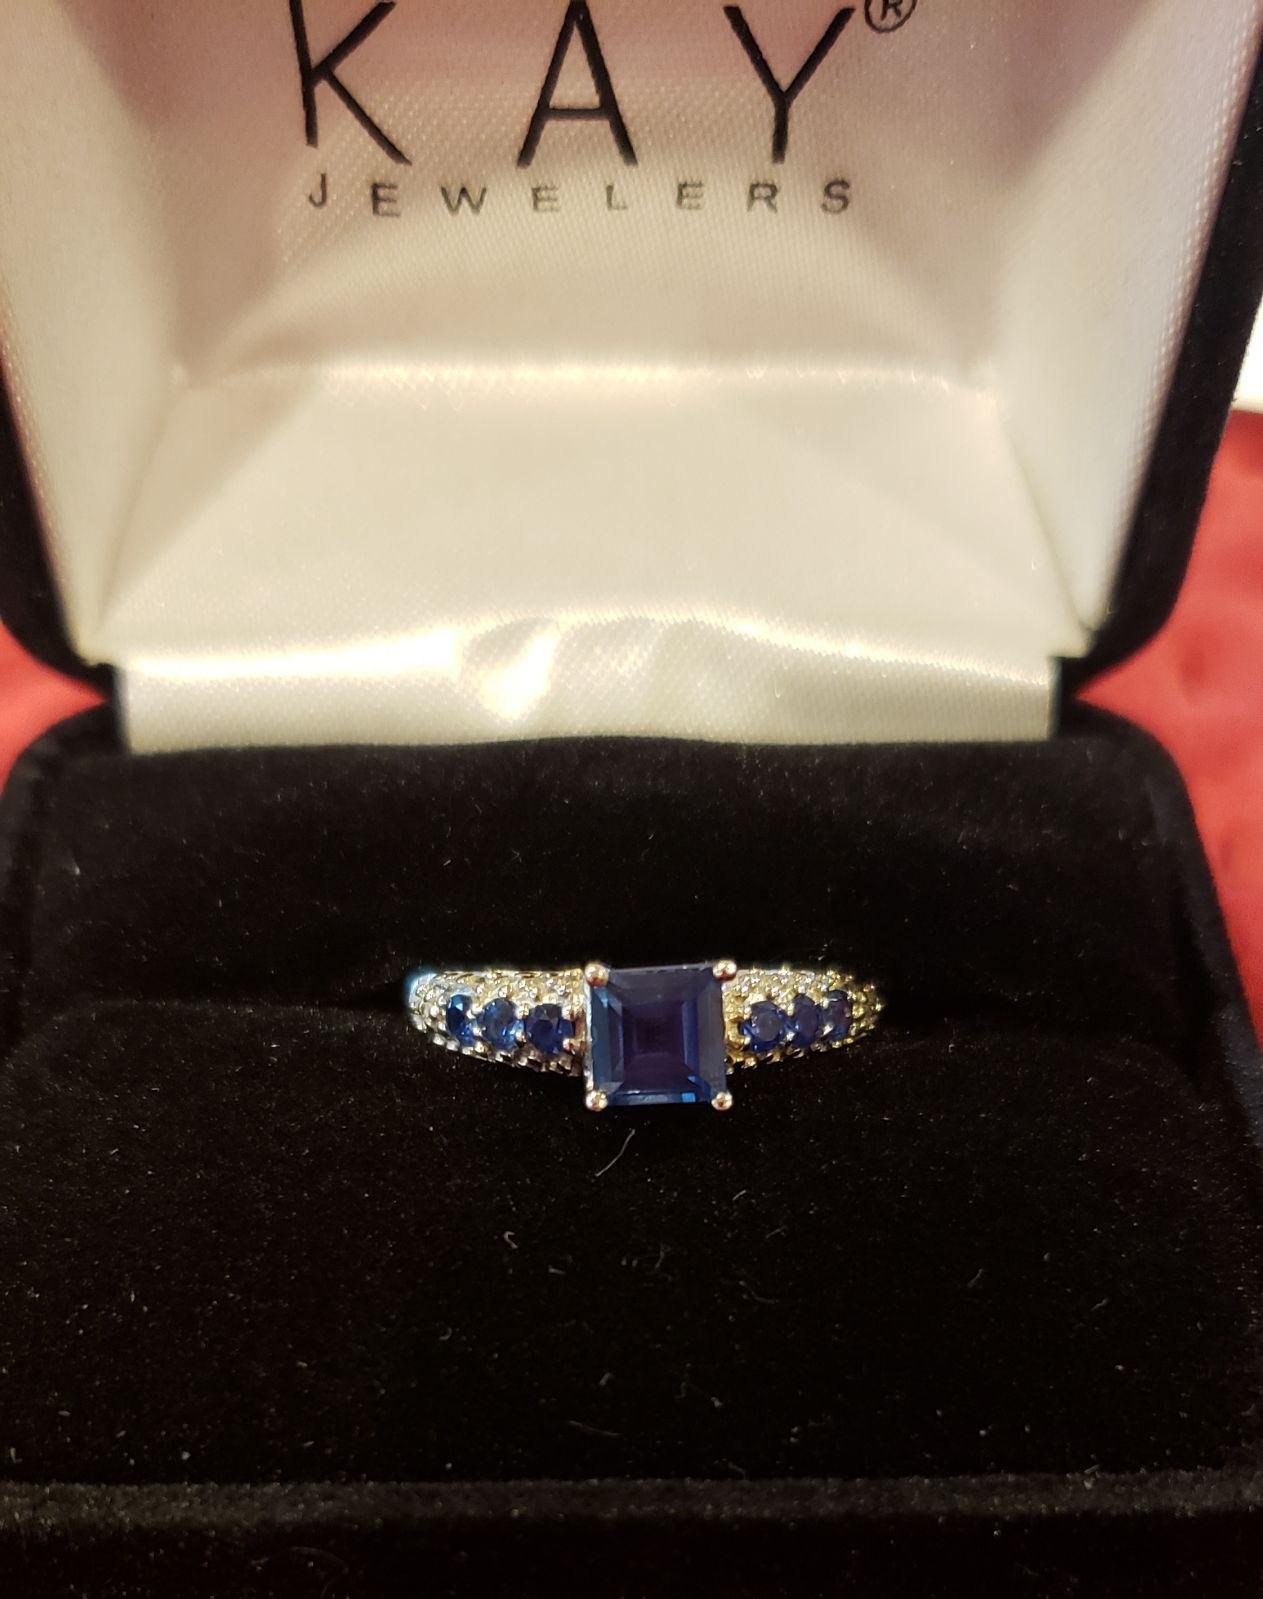 Worn Once Like New Kay Jewelers 10k White Gold Lab Created Sapphire Ring Size 6 5 Kay Jewelers Rings Blue Rings Kay Jewelers